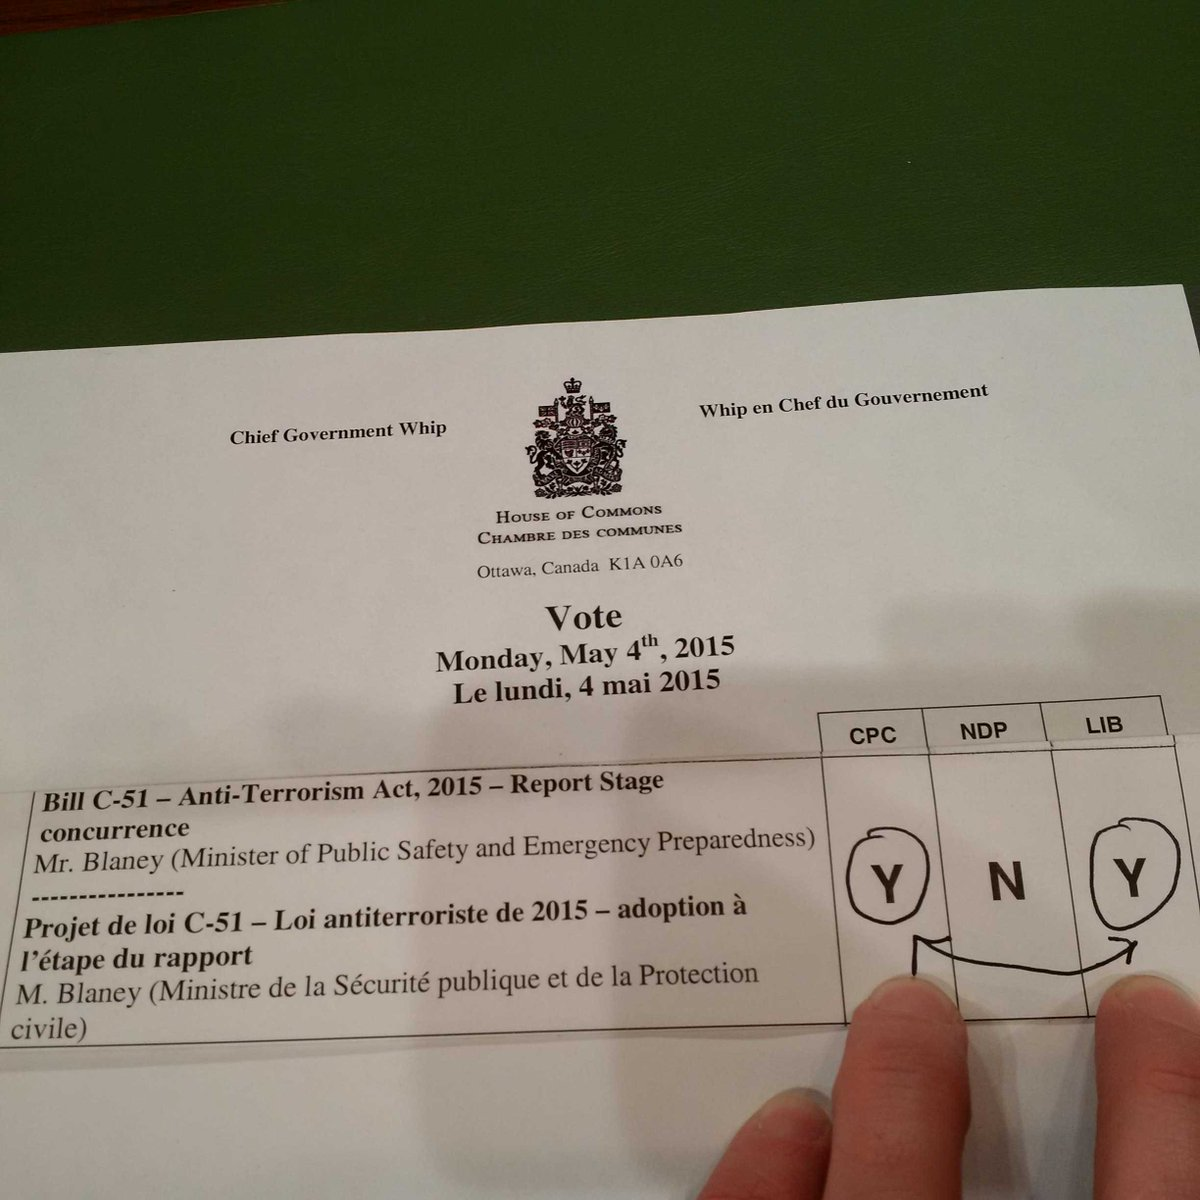 Liberals and Conservatives voting together tonight to bring dangerous #BillC51 one step closer to passing. Shame! http://t.co/x7nhjASqC2